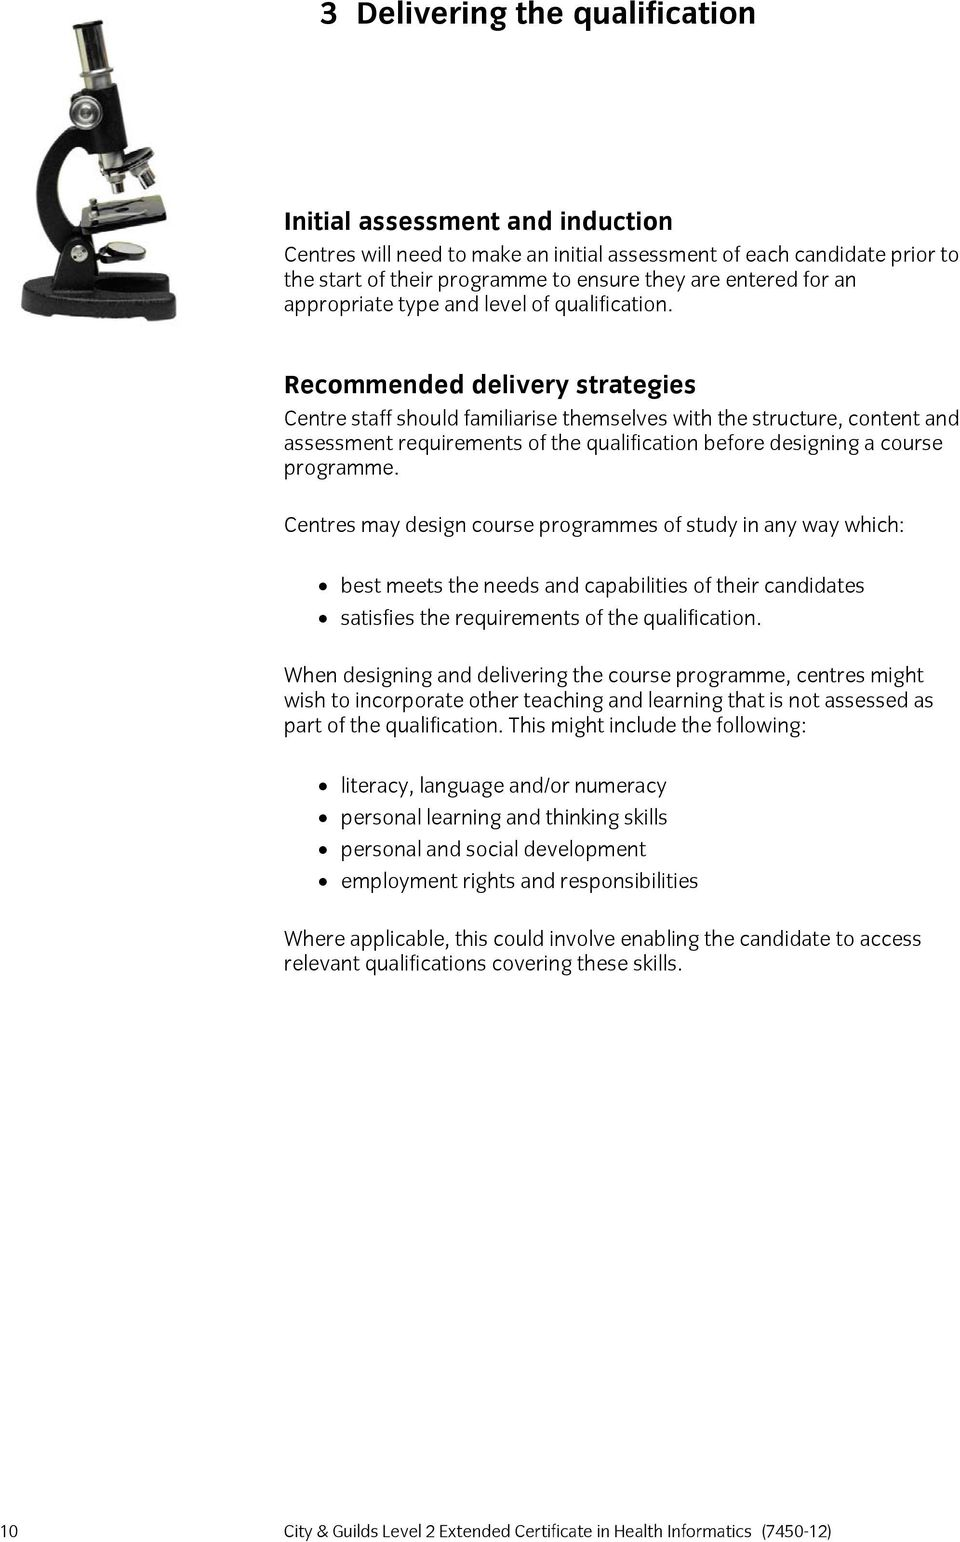 Recommended delivery strategies Centre staff should familiarise themselves with the structure, content and assessment requirements of the qualification before designing a course programme.